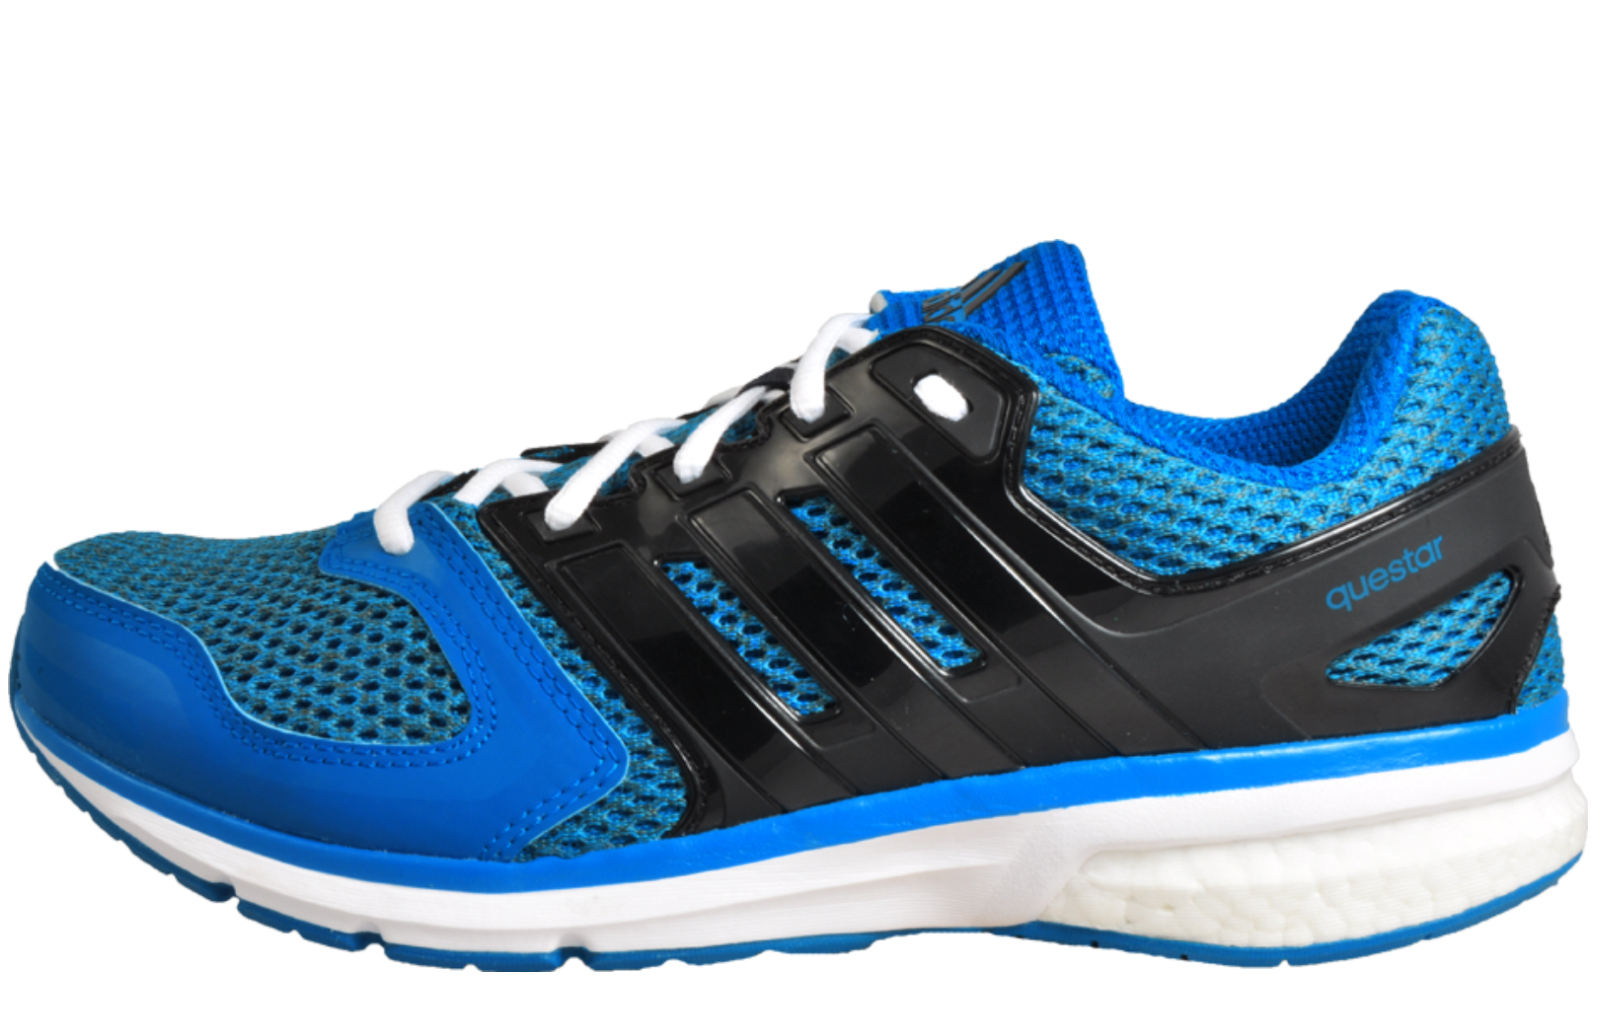 c581f0749c19 Adidas Questar Boost Mens